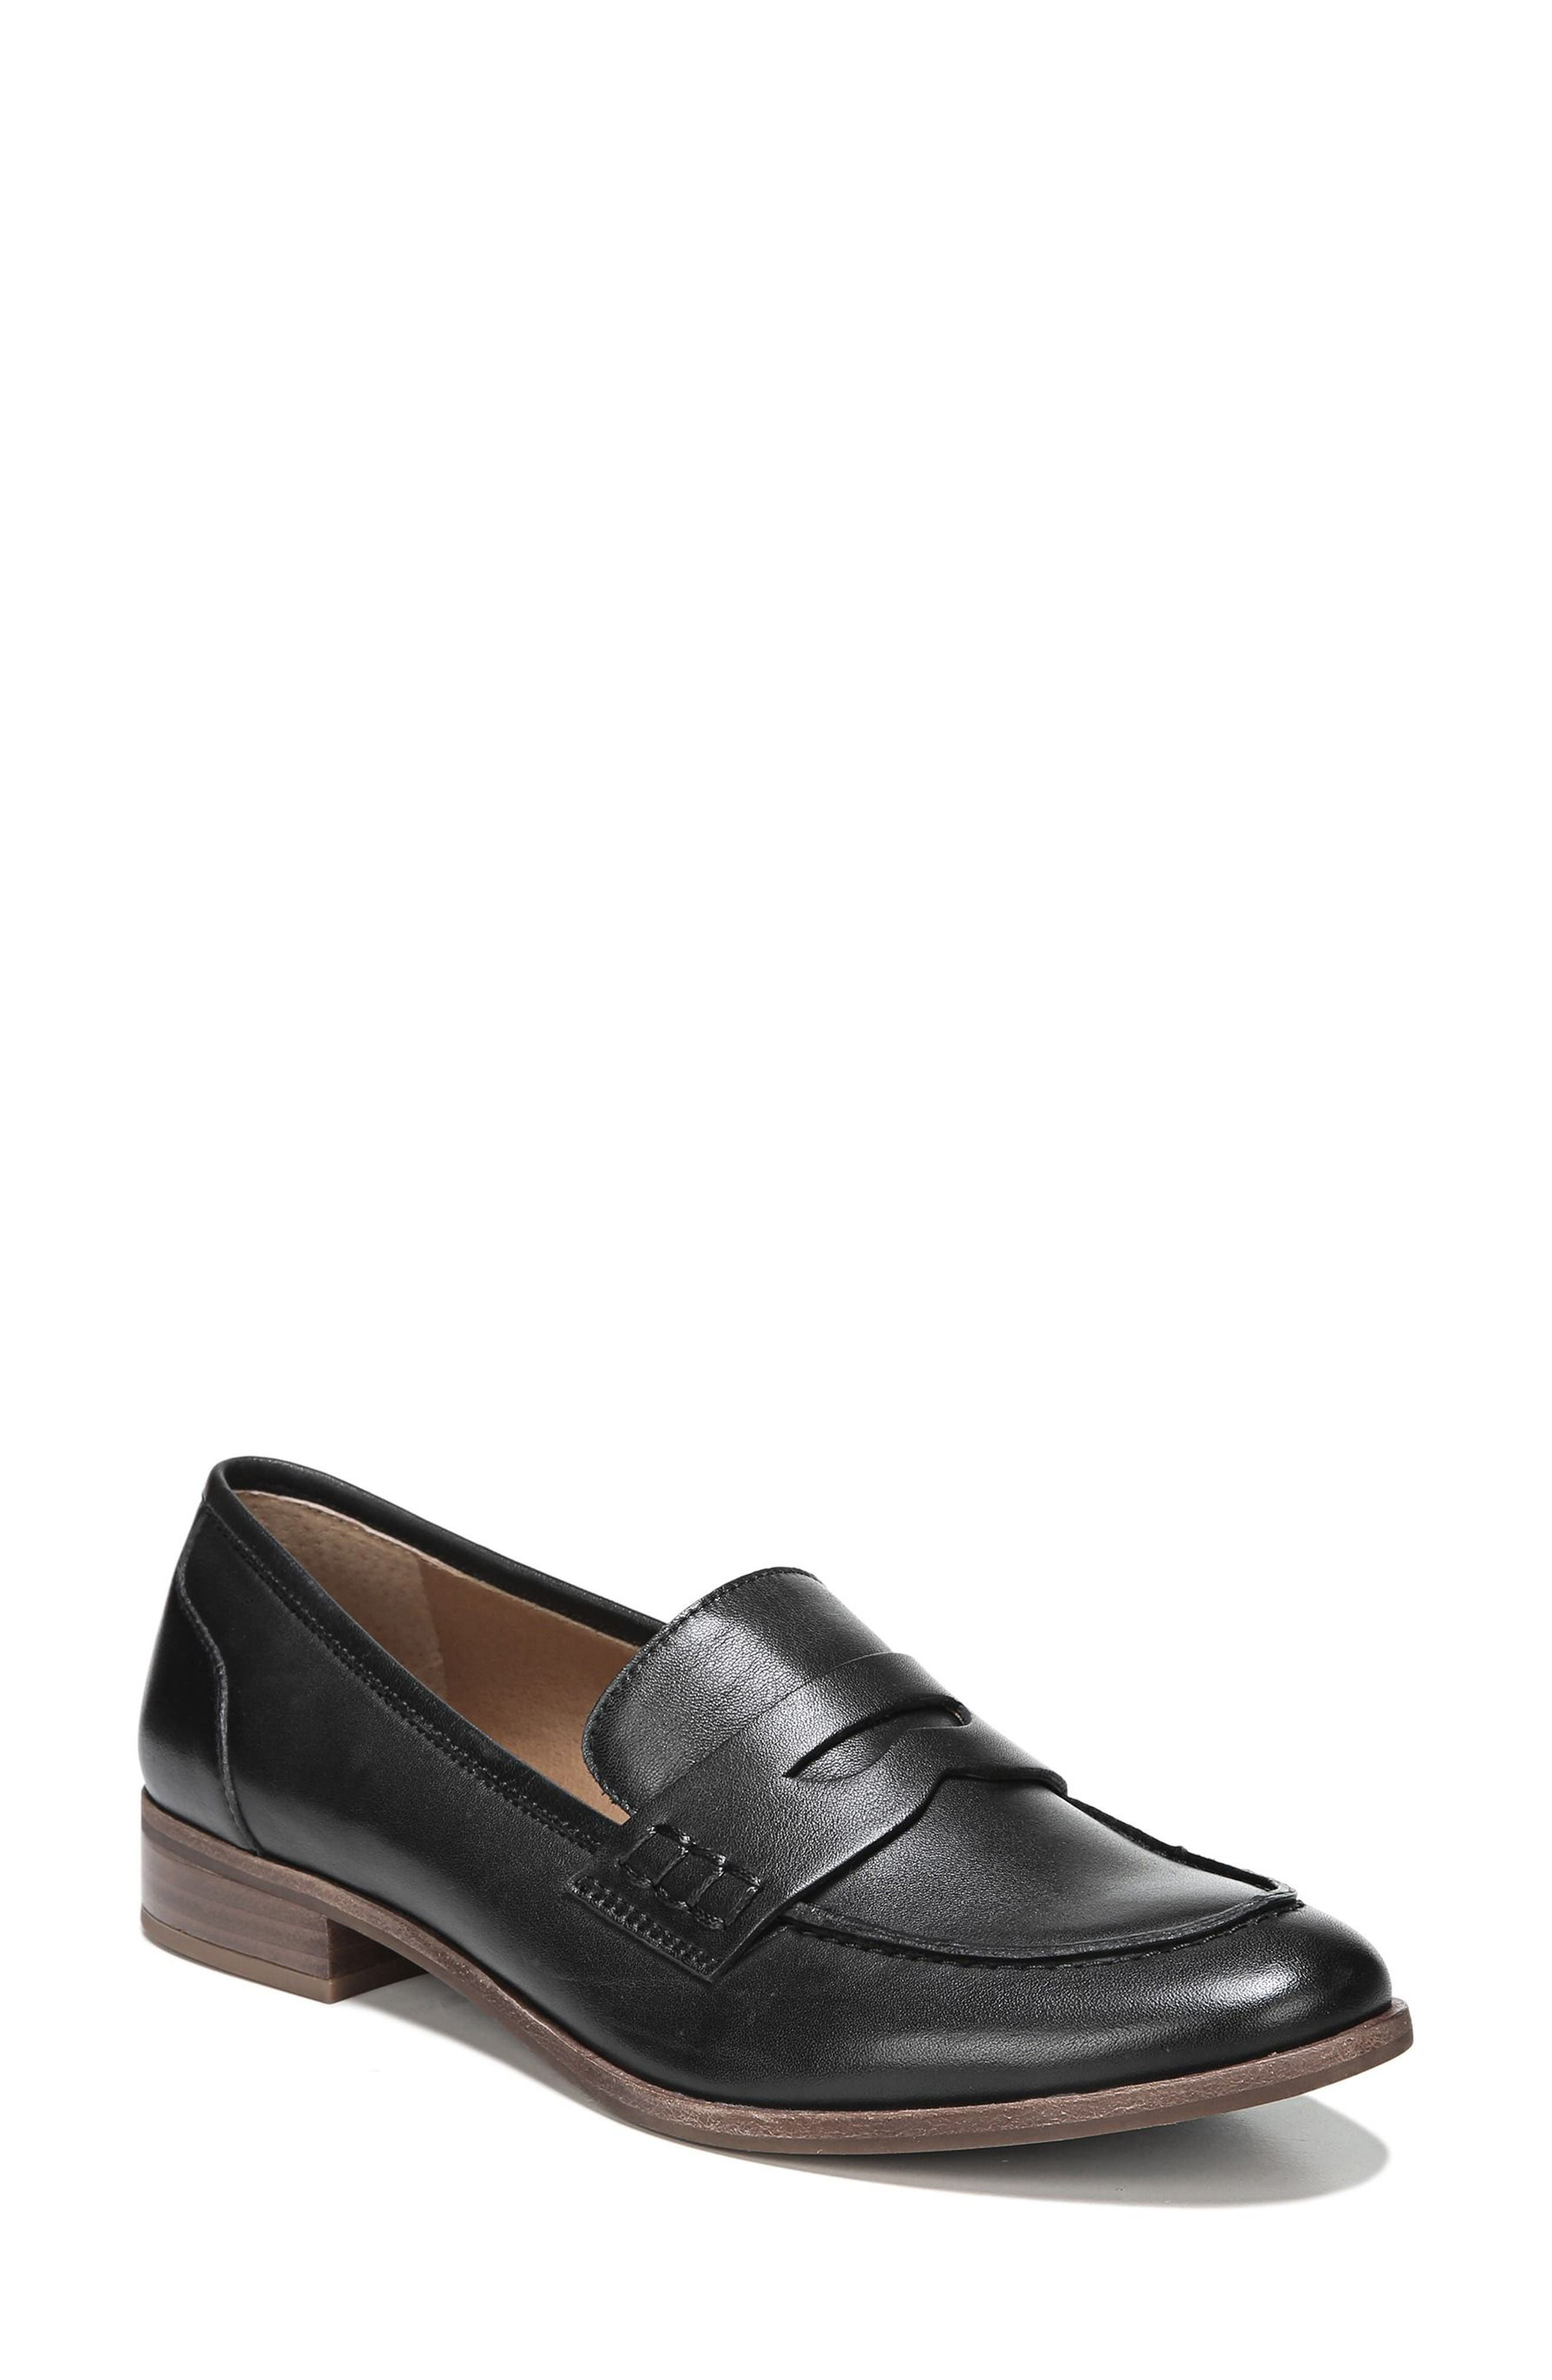 SARTO BY FRANCO SARTO 'Jolette' Penny Loafer, Main, color, BLACK LEATHER